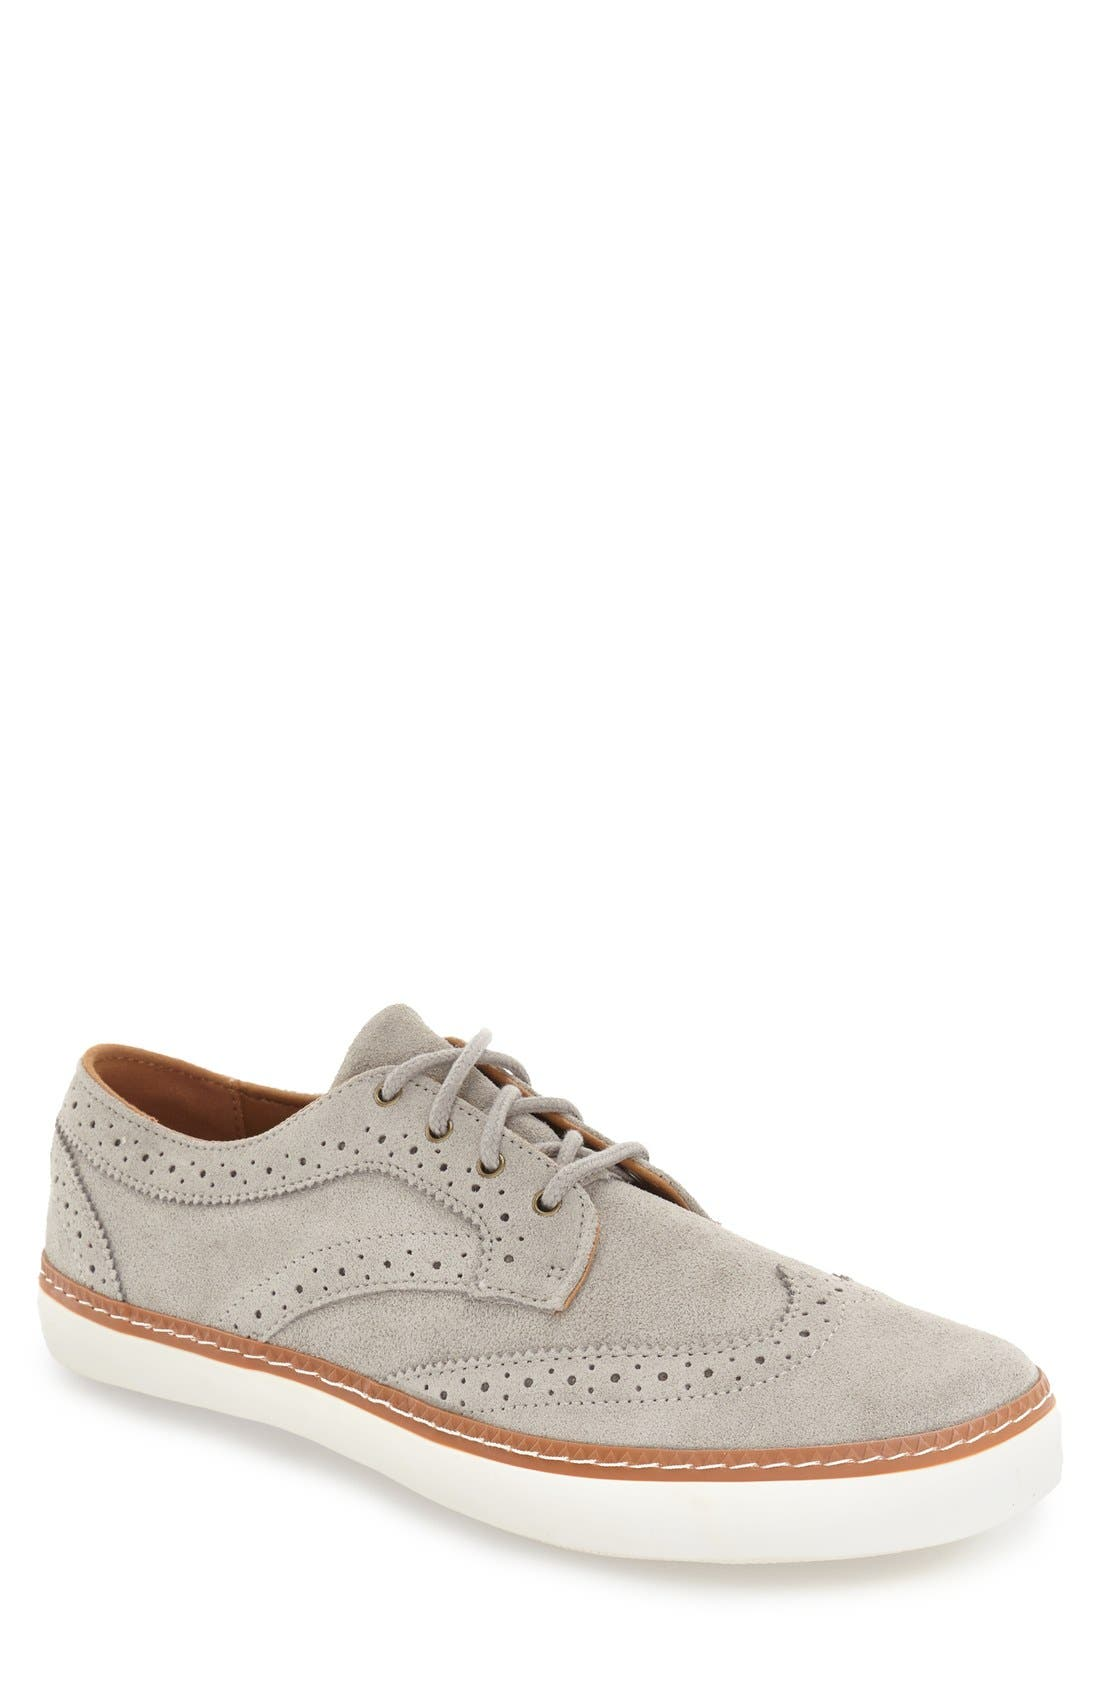 'Novello' Wingtip Sneaker,                         Main,                         color,